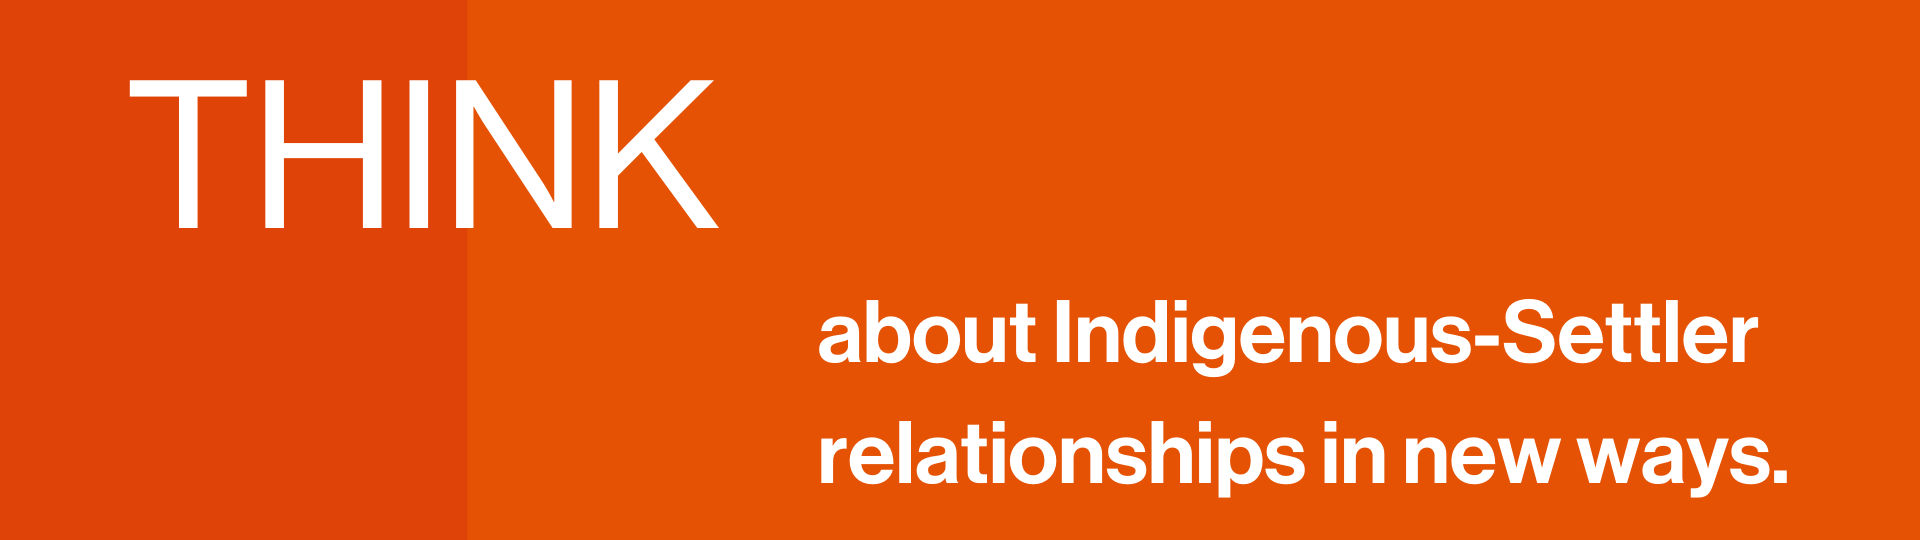 THINK about Indigenous-Settler relationships in new ways.